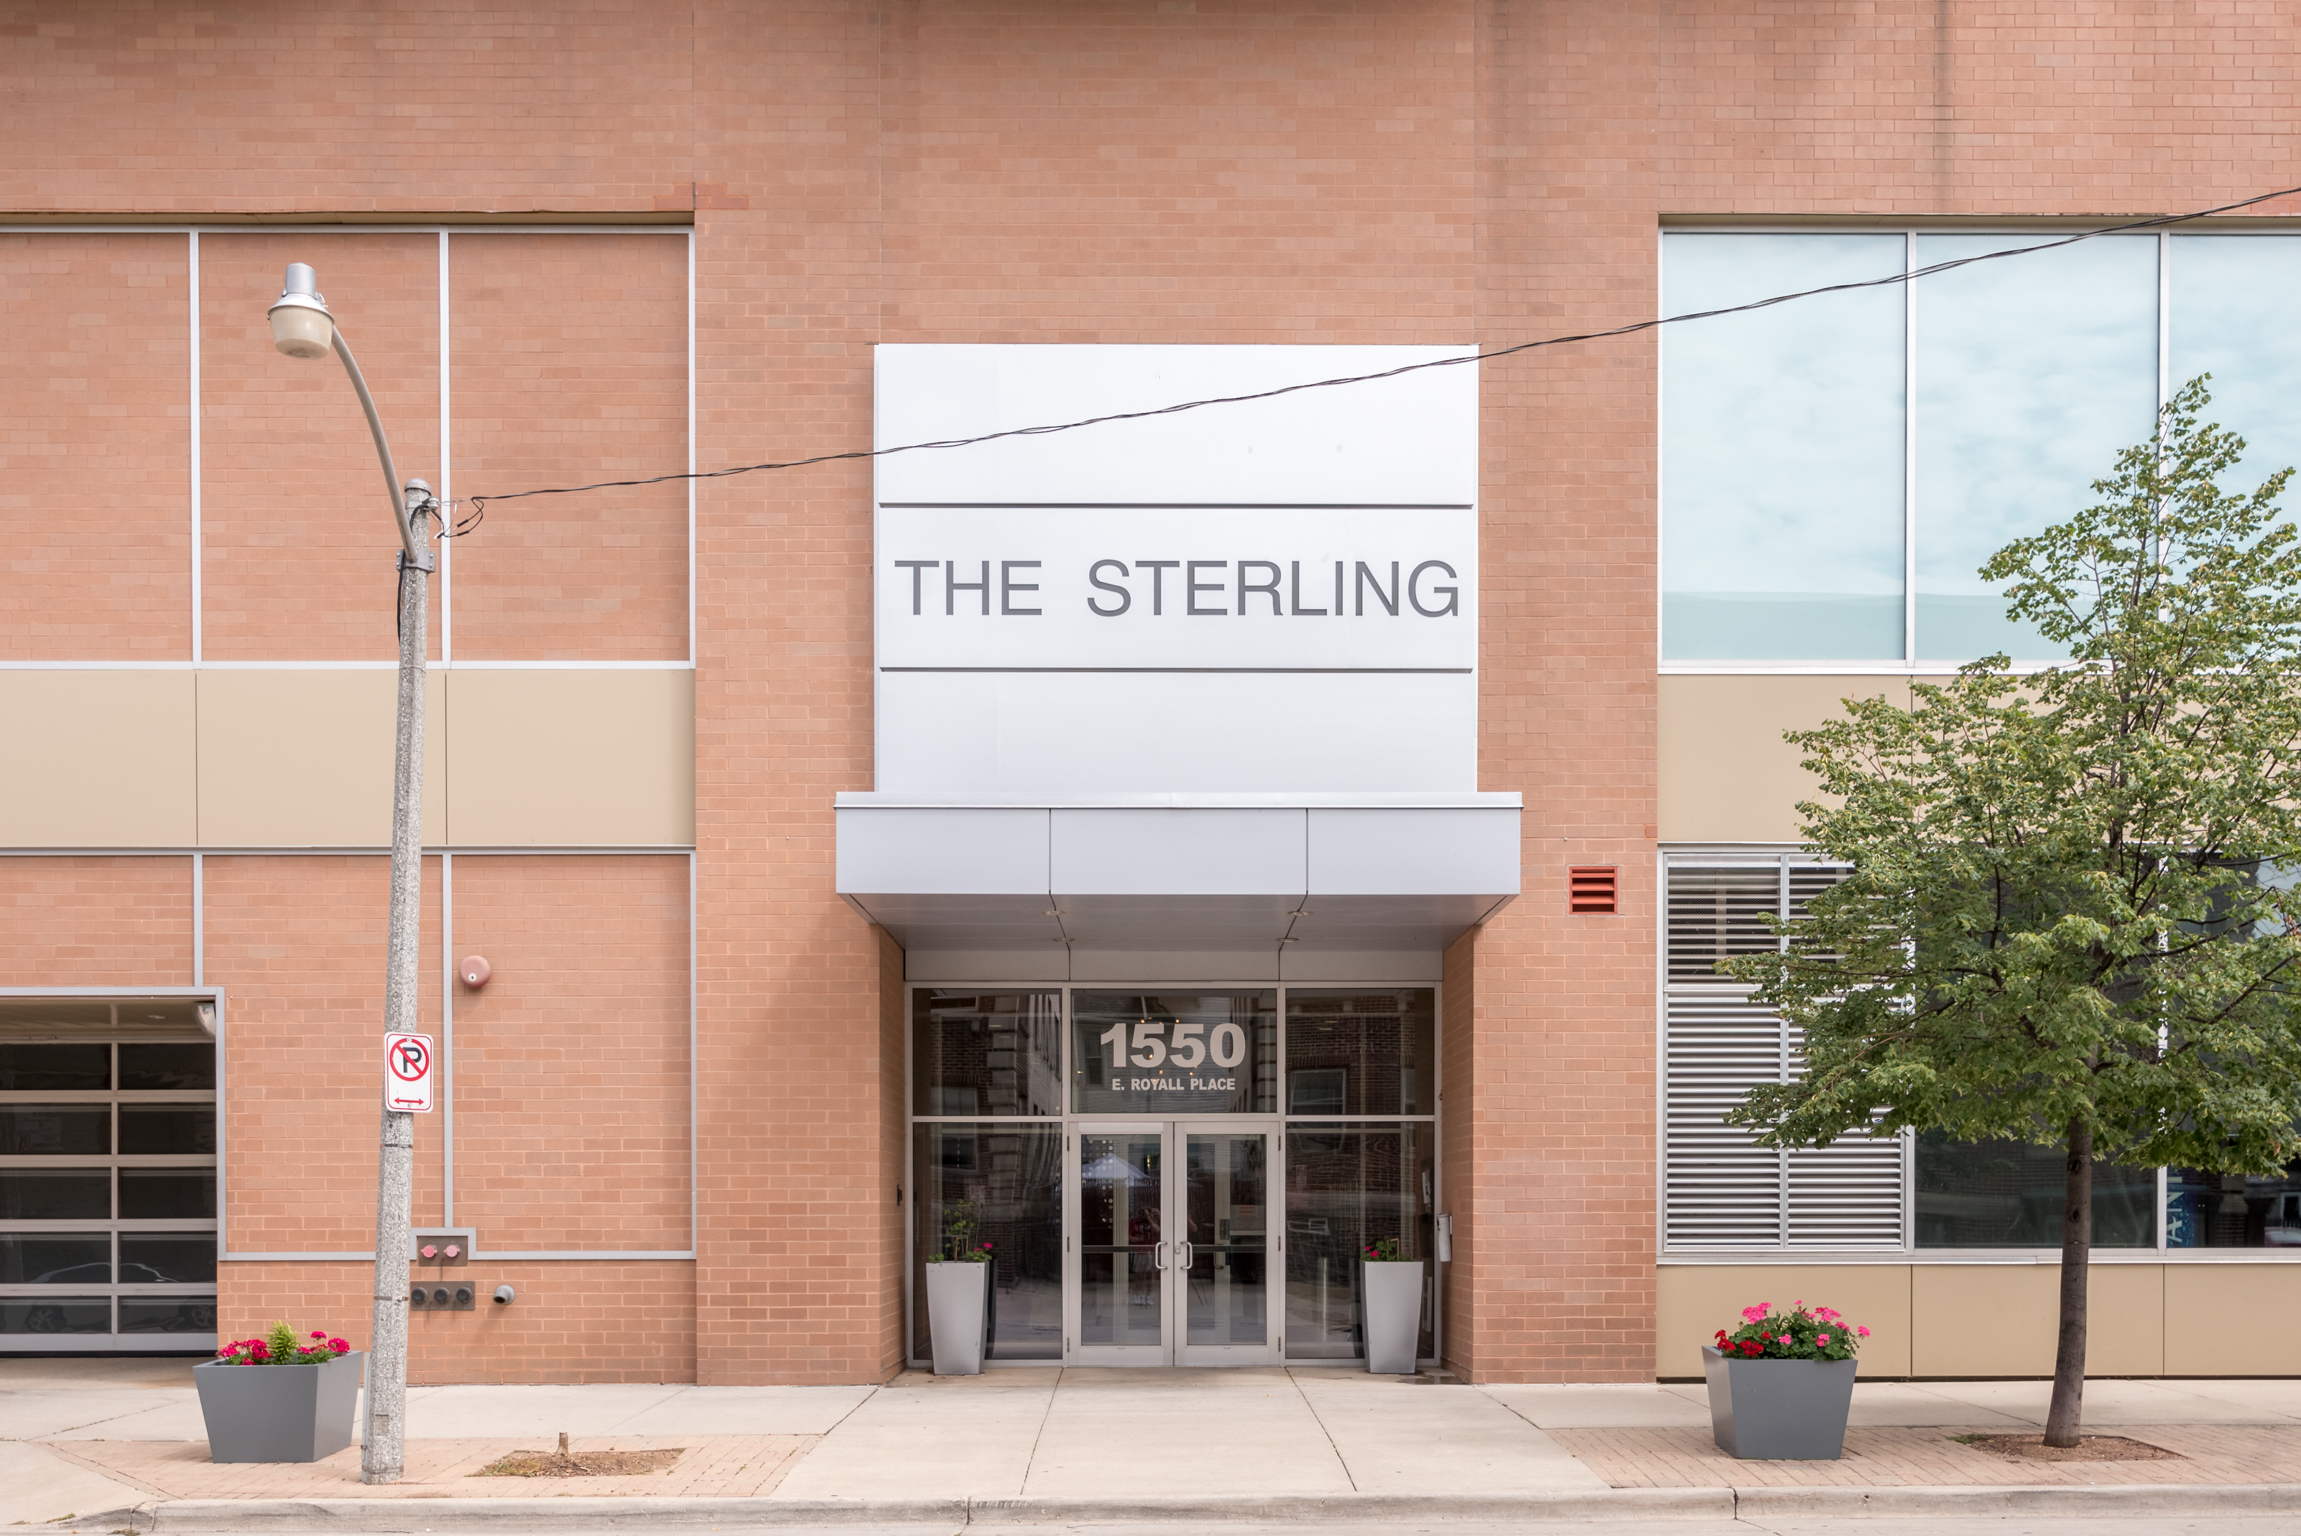 The Sterling building by James Meyer Photography